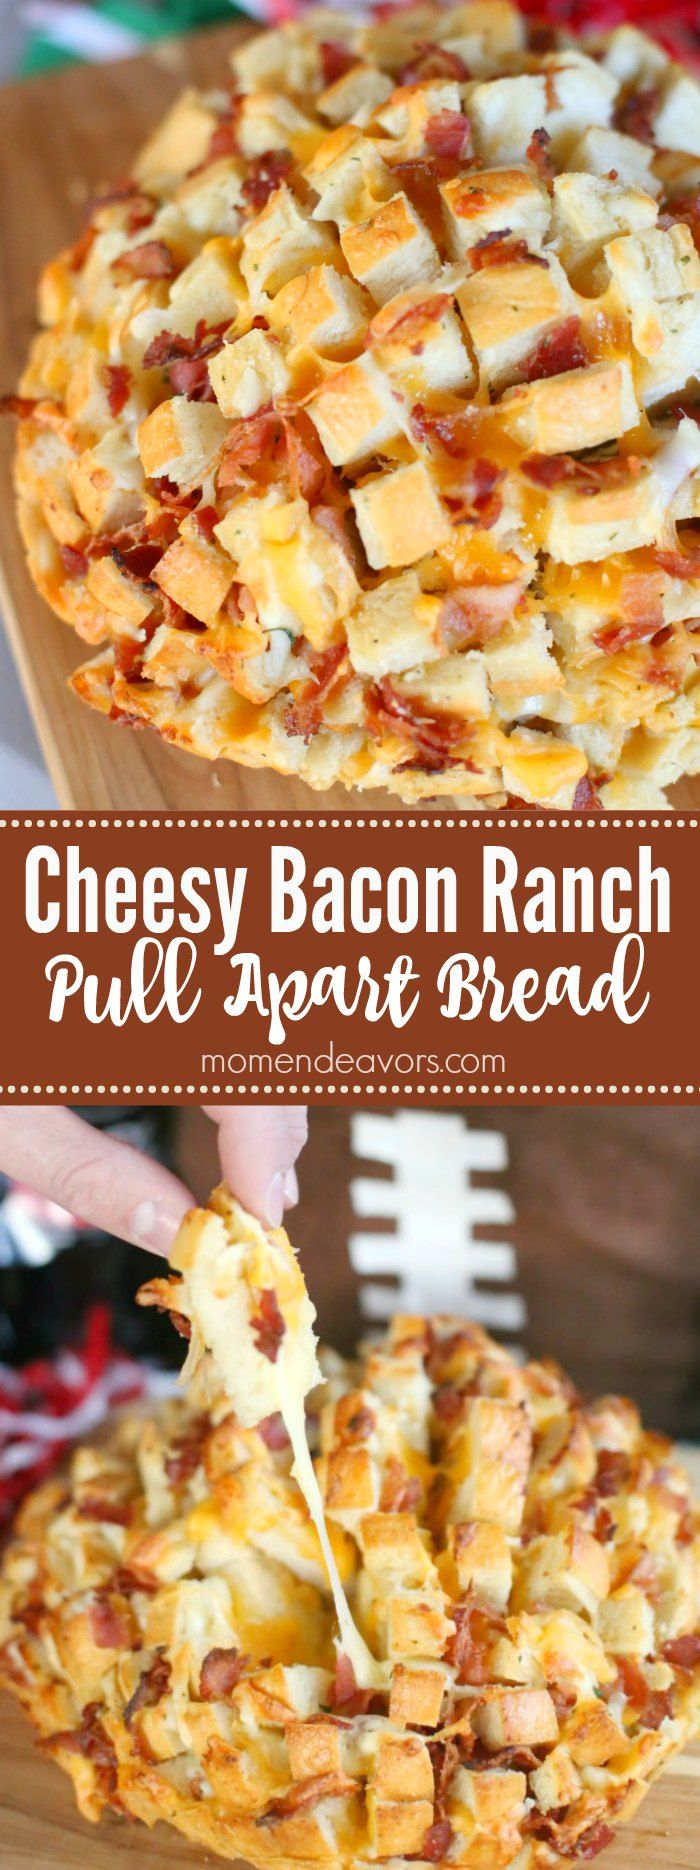 Cheesy Bacon Ranch Pull Apart Bread - a delicious, easy-to-make appetizer perfect for parties or football food!  #ServeWithACoke #BowlGames AD #footballfood